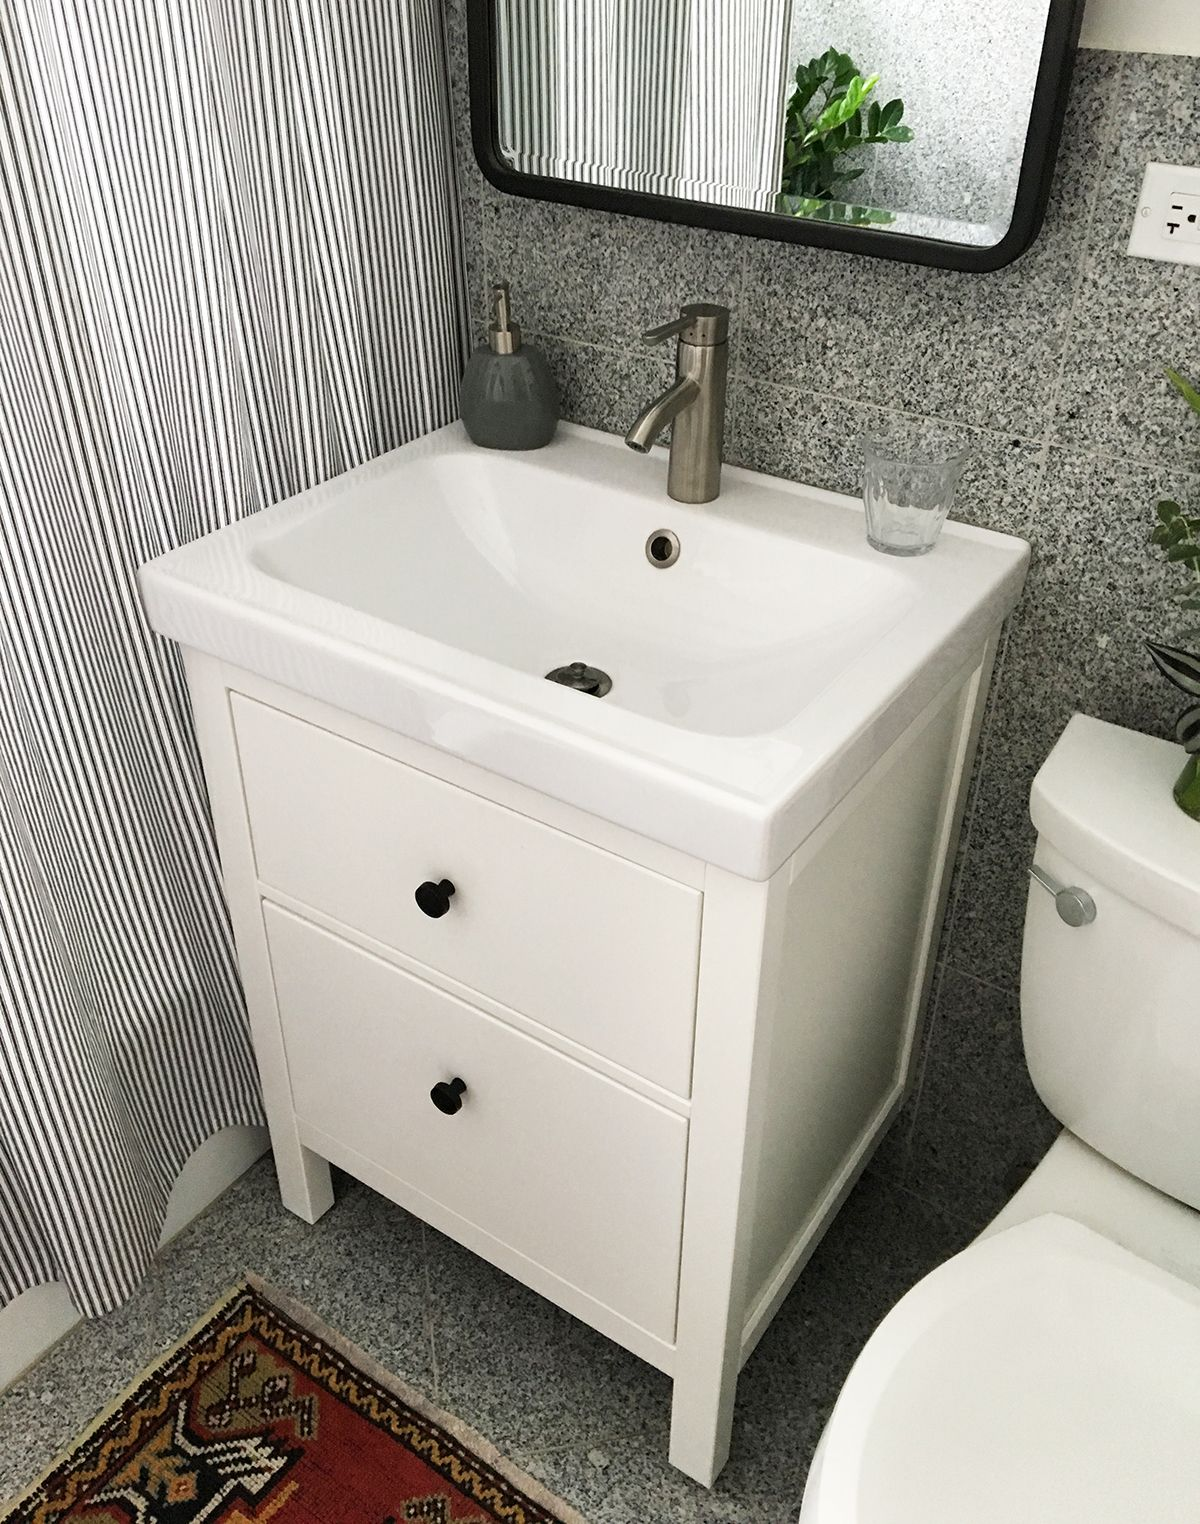 How I Installed An Ikea Bathroom Vanity Ikea Bathroom Vanity Ikea Bathroom Ikea Bathroom Sinks